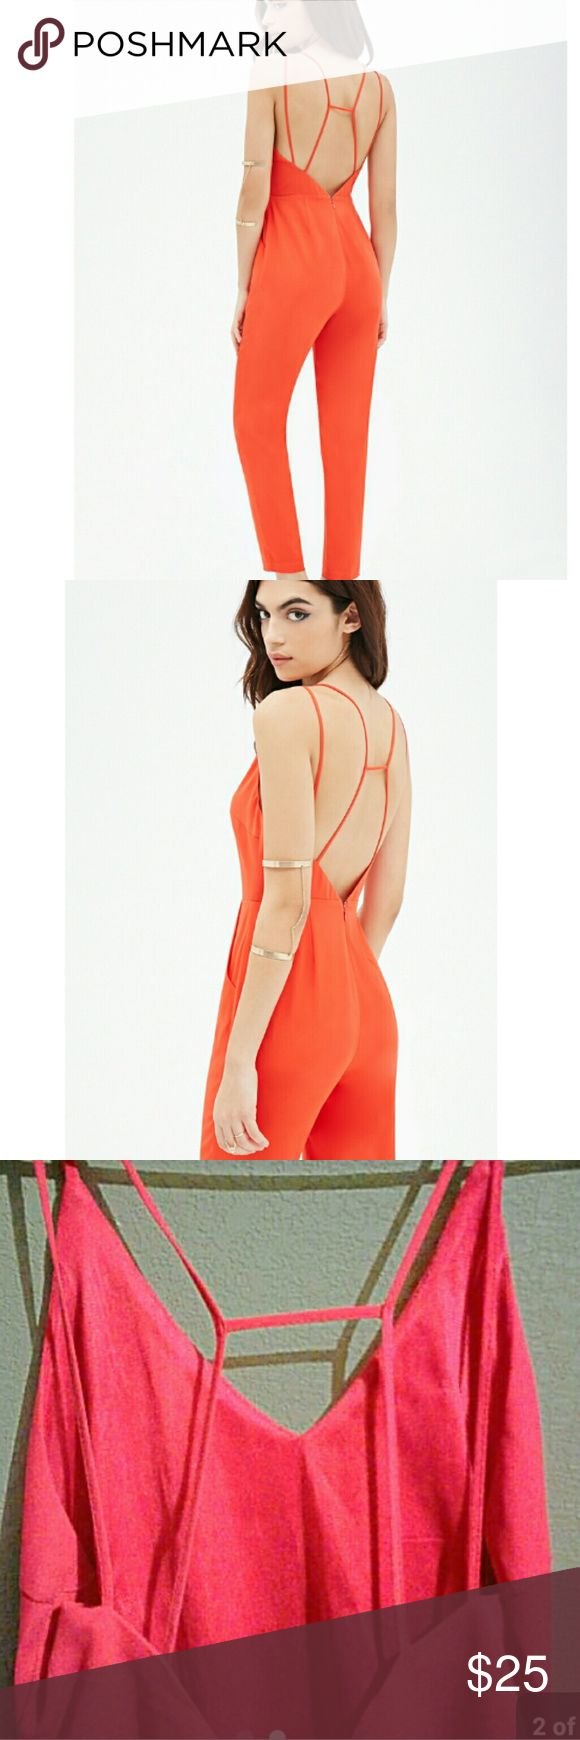 Forever 21 coral jumpsuit Never worn  Geometric cutout  Perfect for spring  Size small true to size Cheaper on Merc Forever 21 Dresses Backless